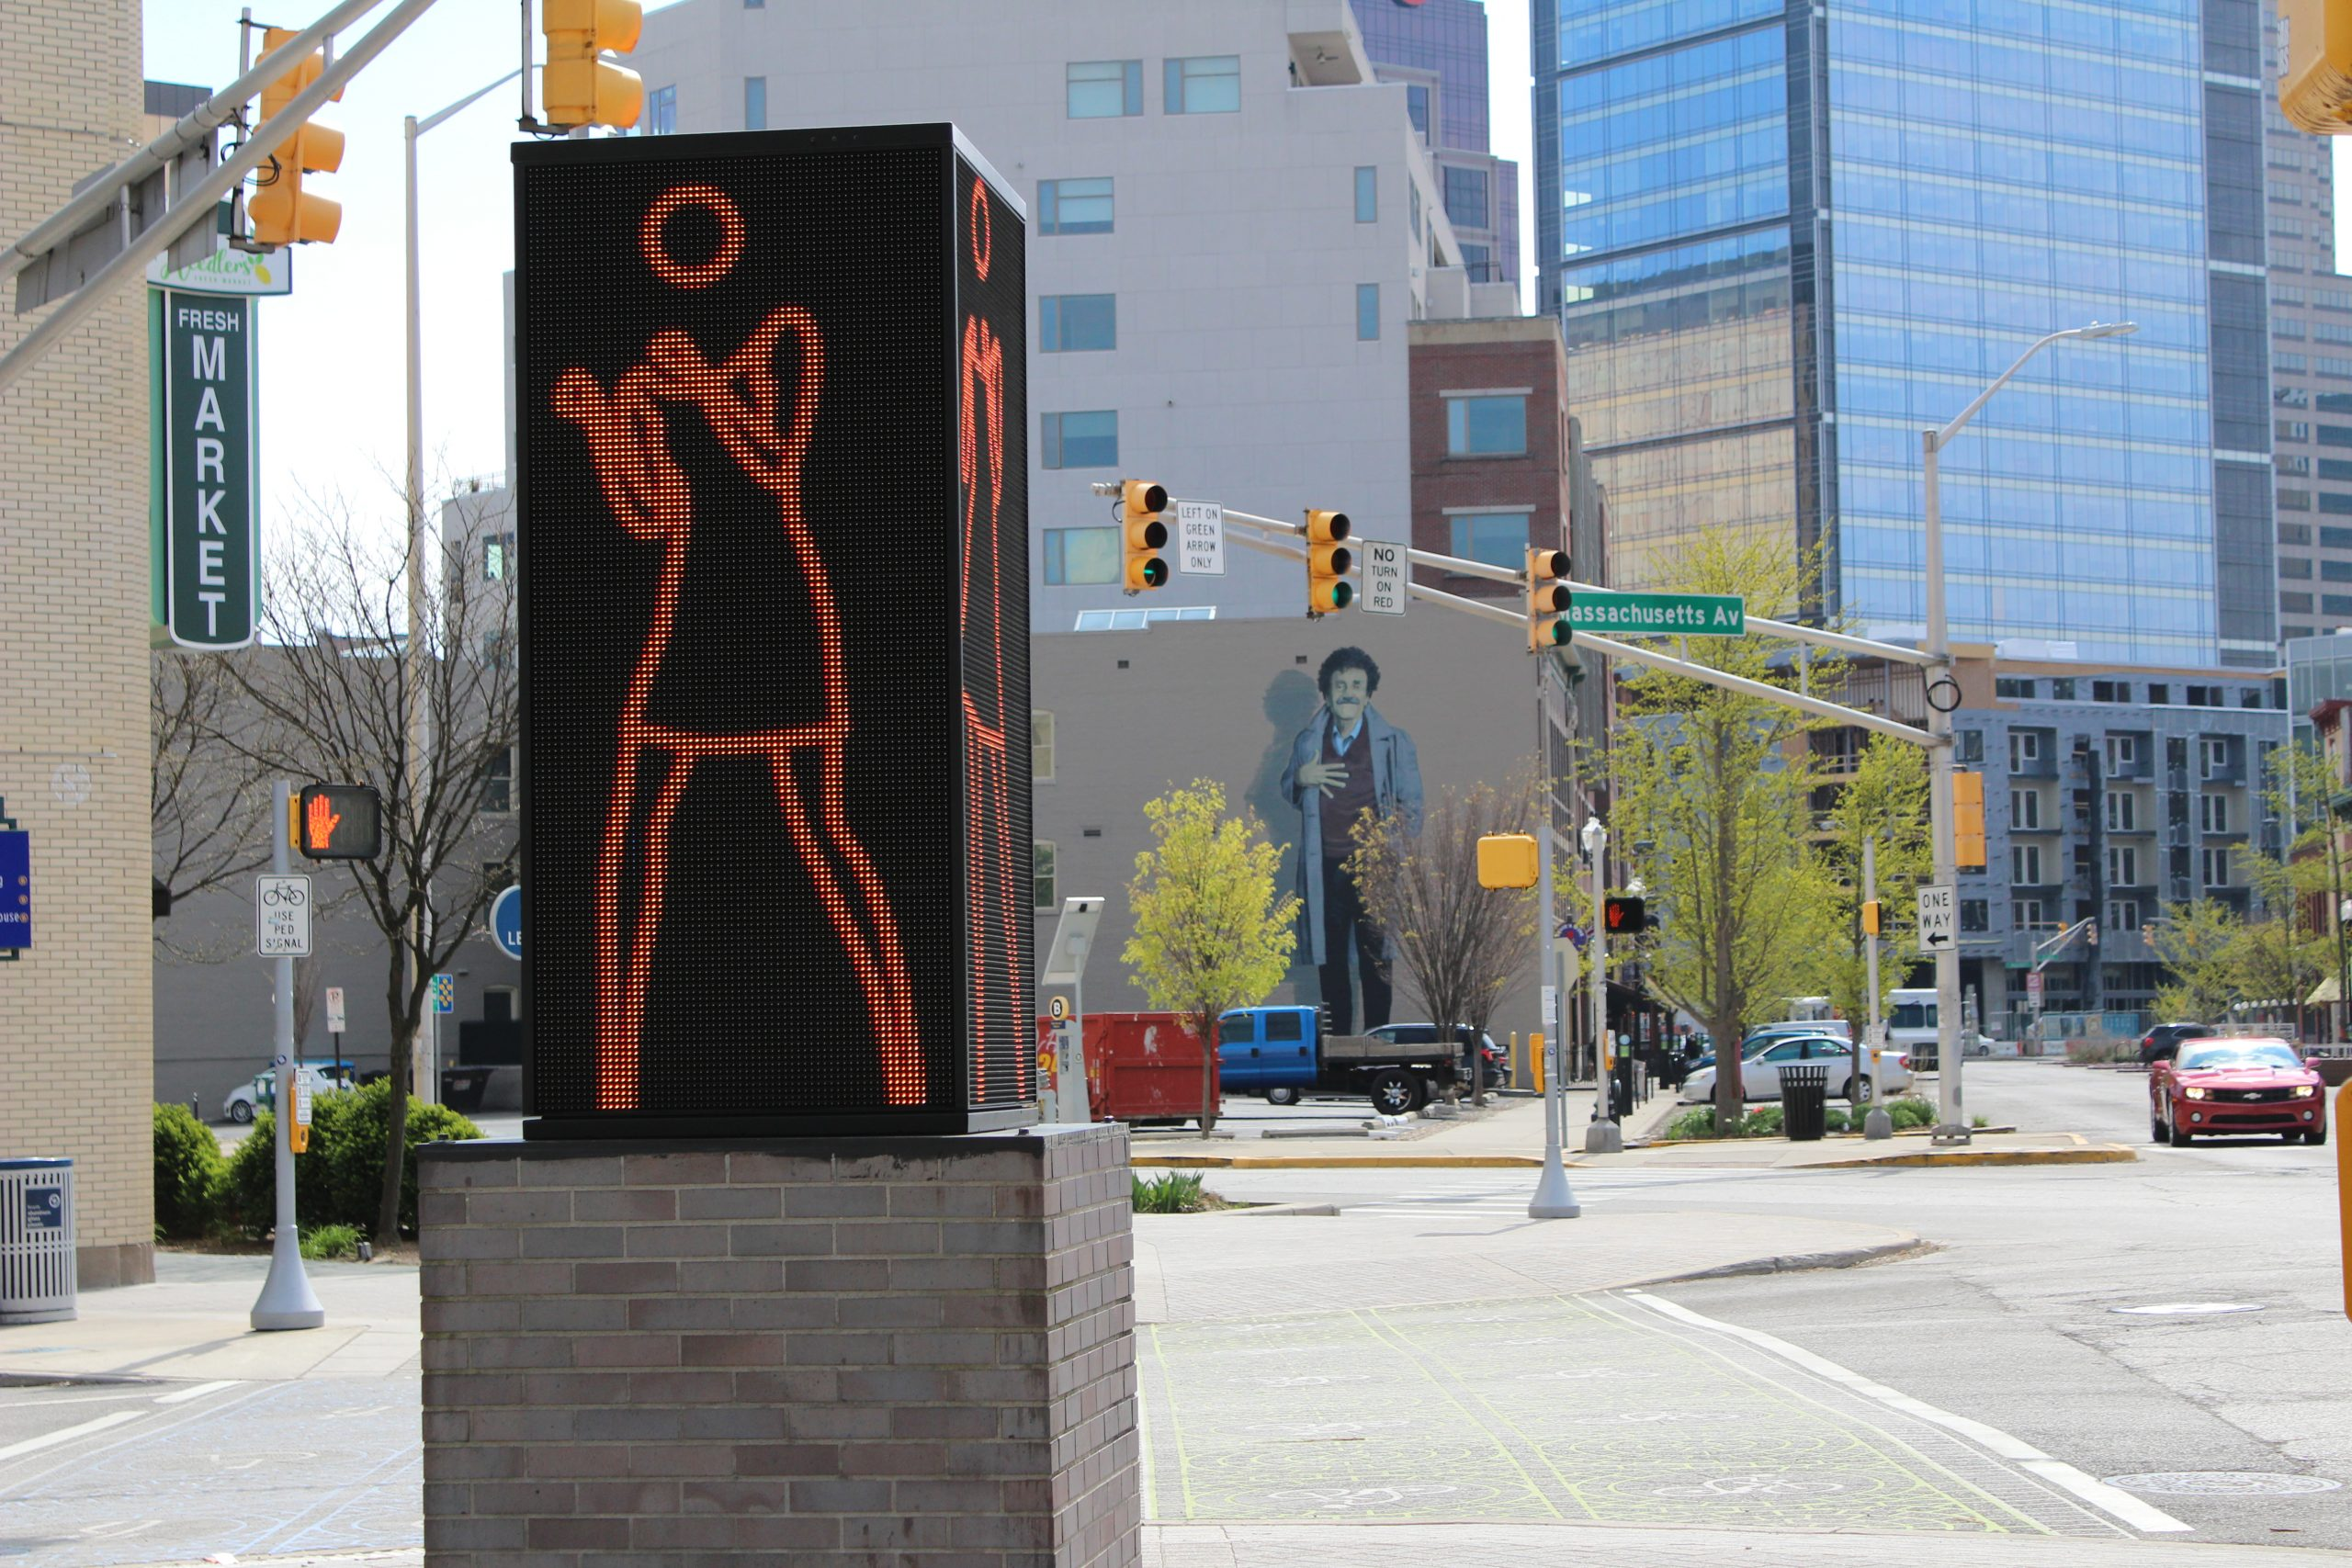 Mass Ave Dancing girl and Kurt Vonnegut